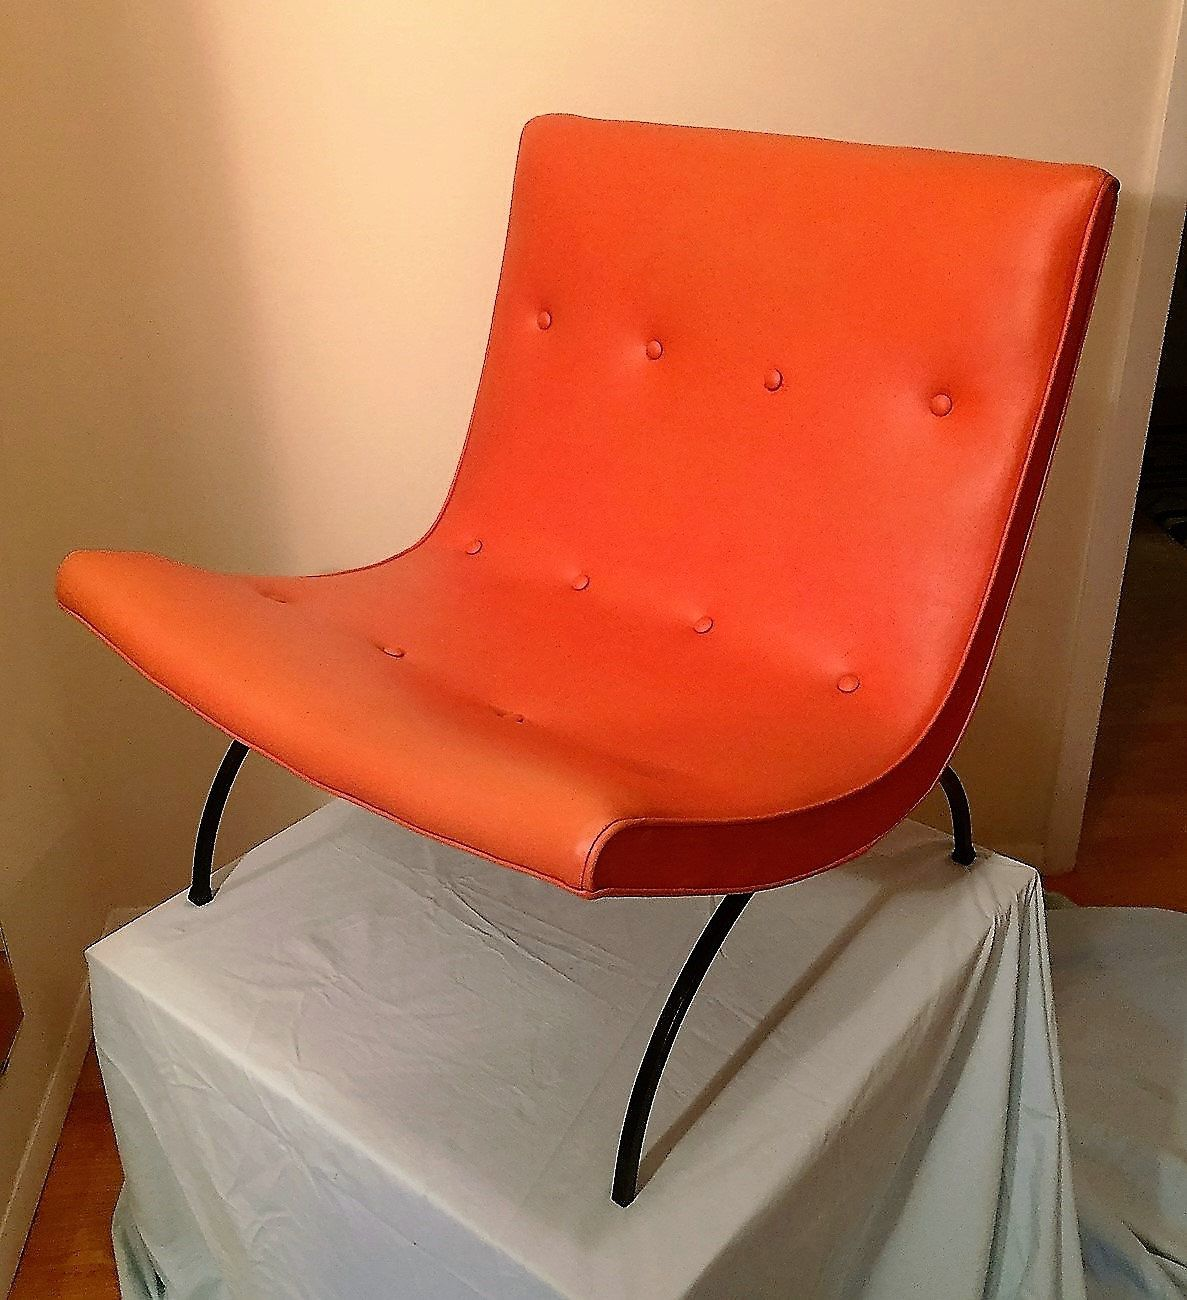 Milo Baughman Scoop Chair / California Modern Orange Chair / Original Tag  By ModernaireMCMStudios On Etsy